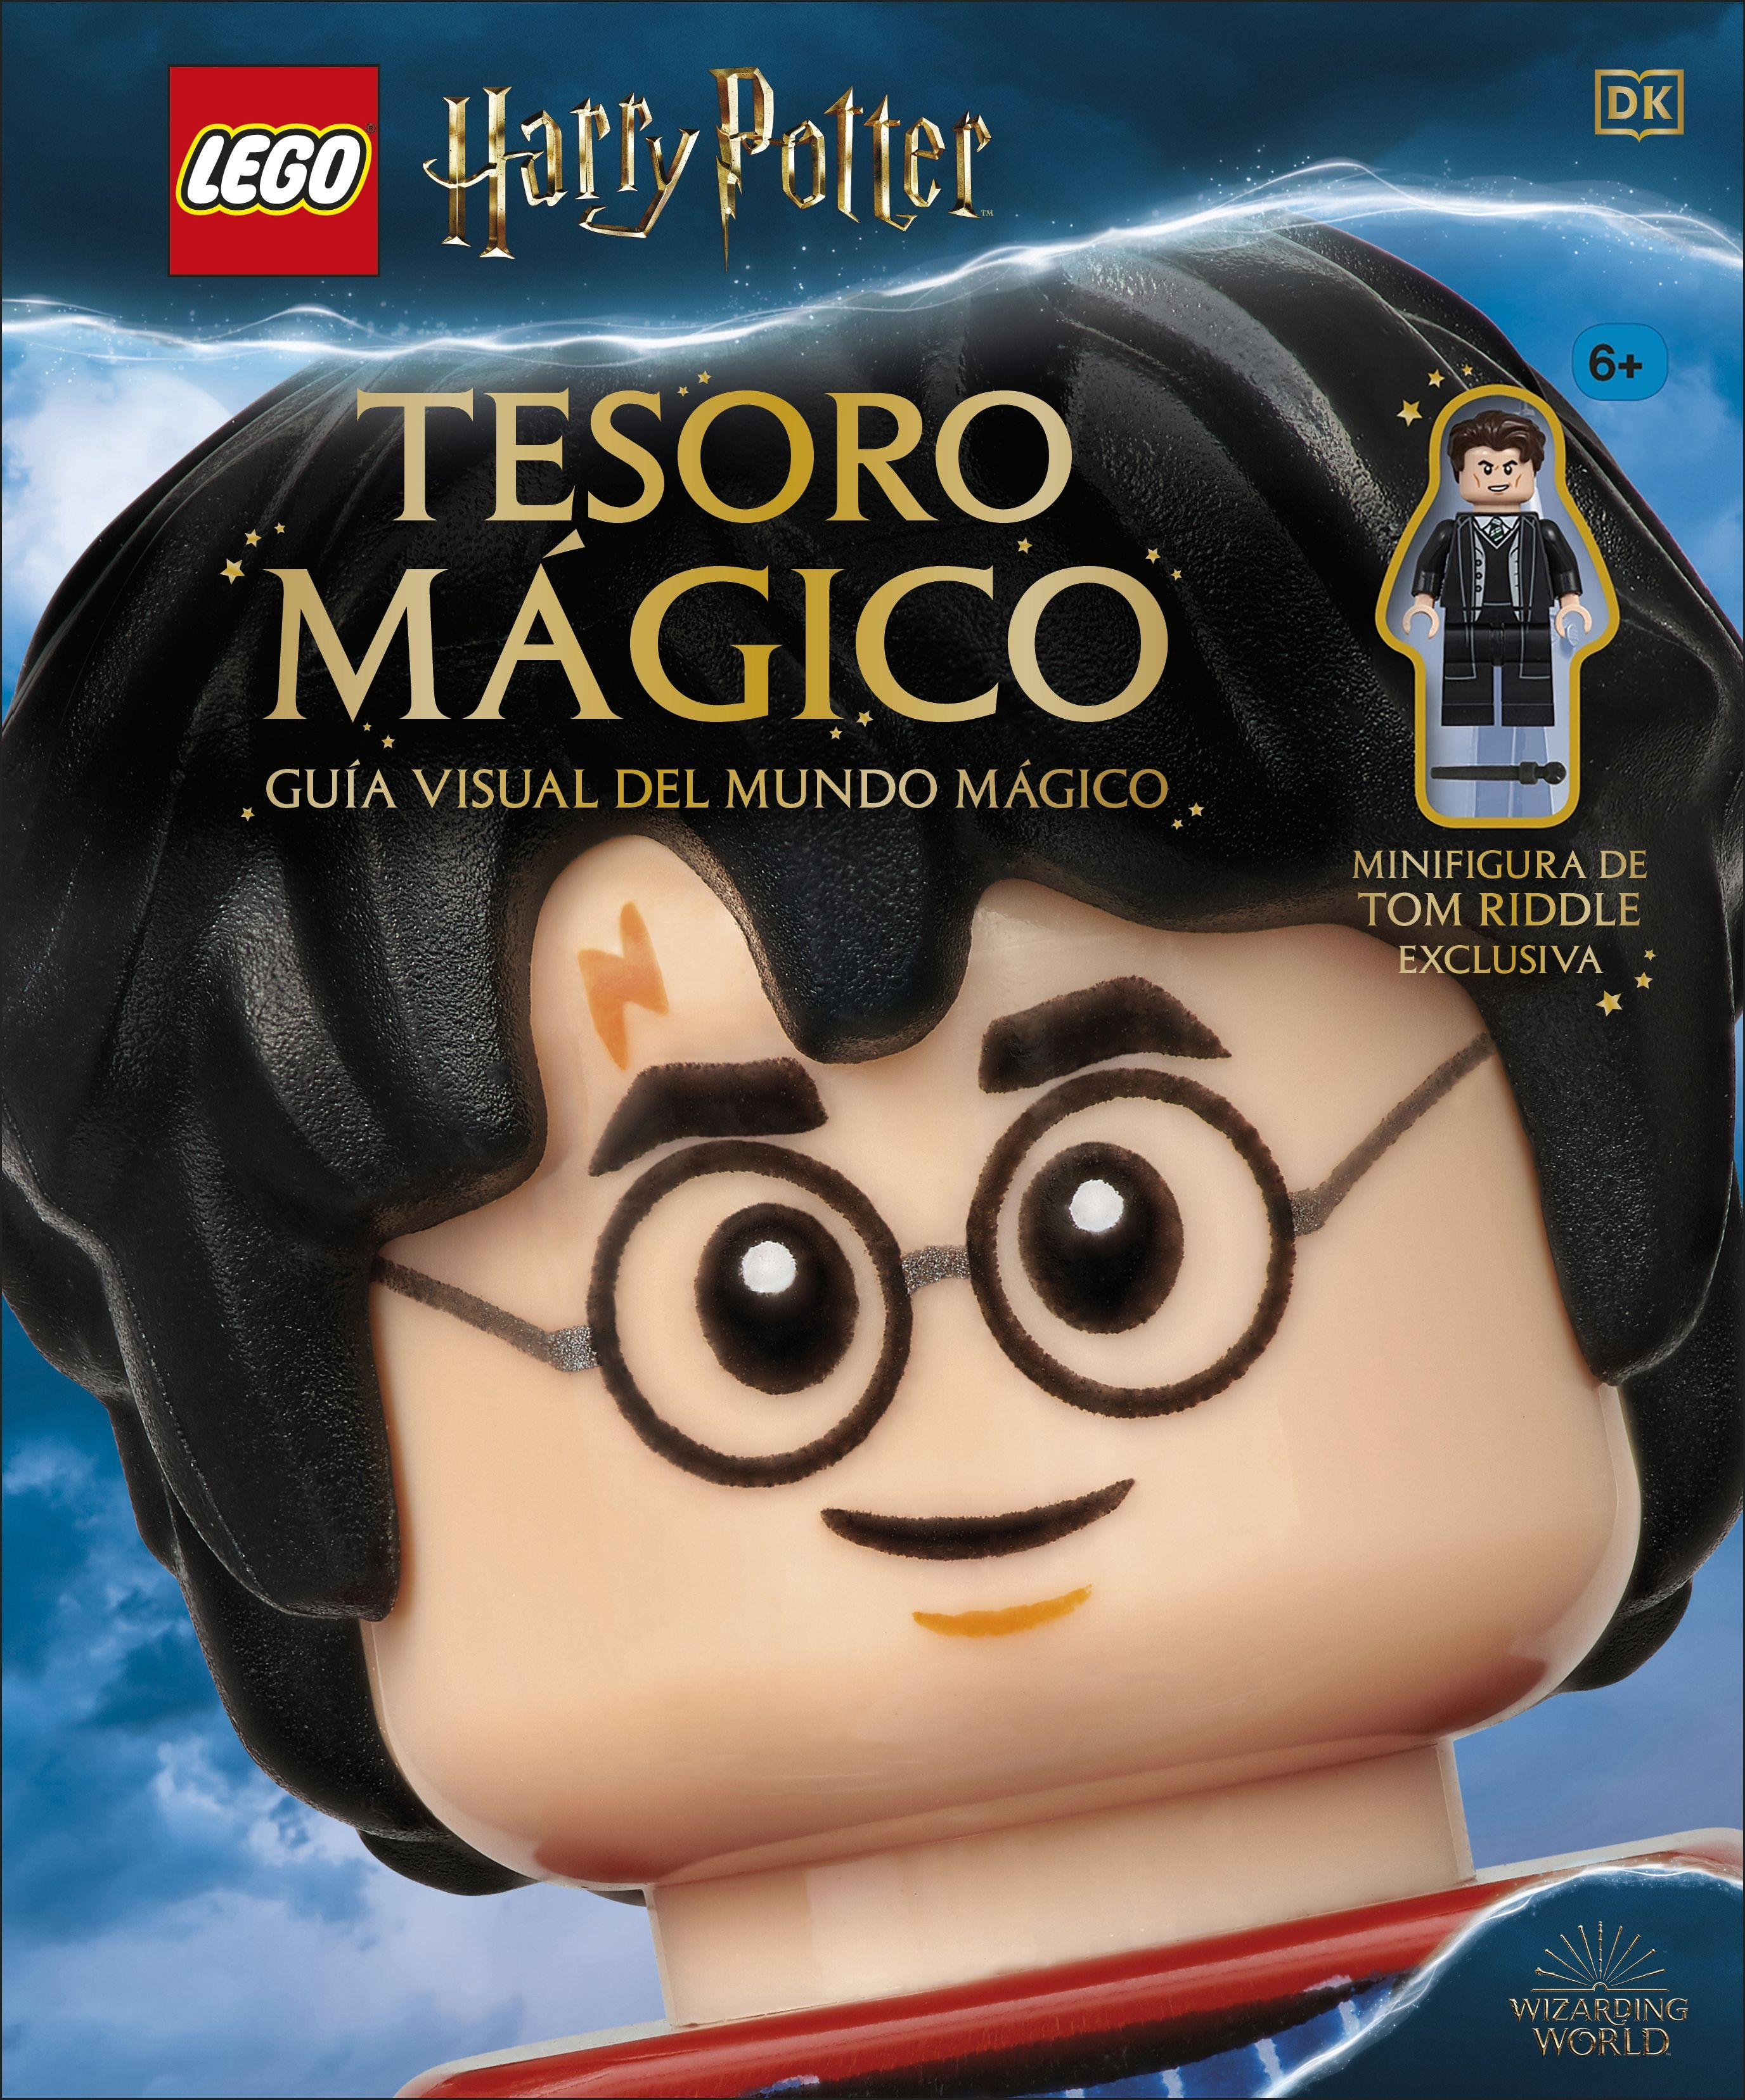 LEGO HARRY POTTER TESORO MAGICO